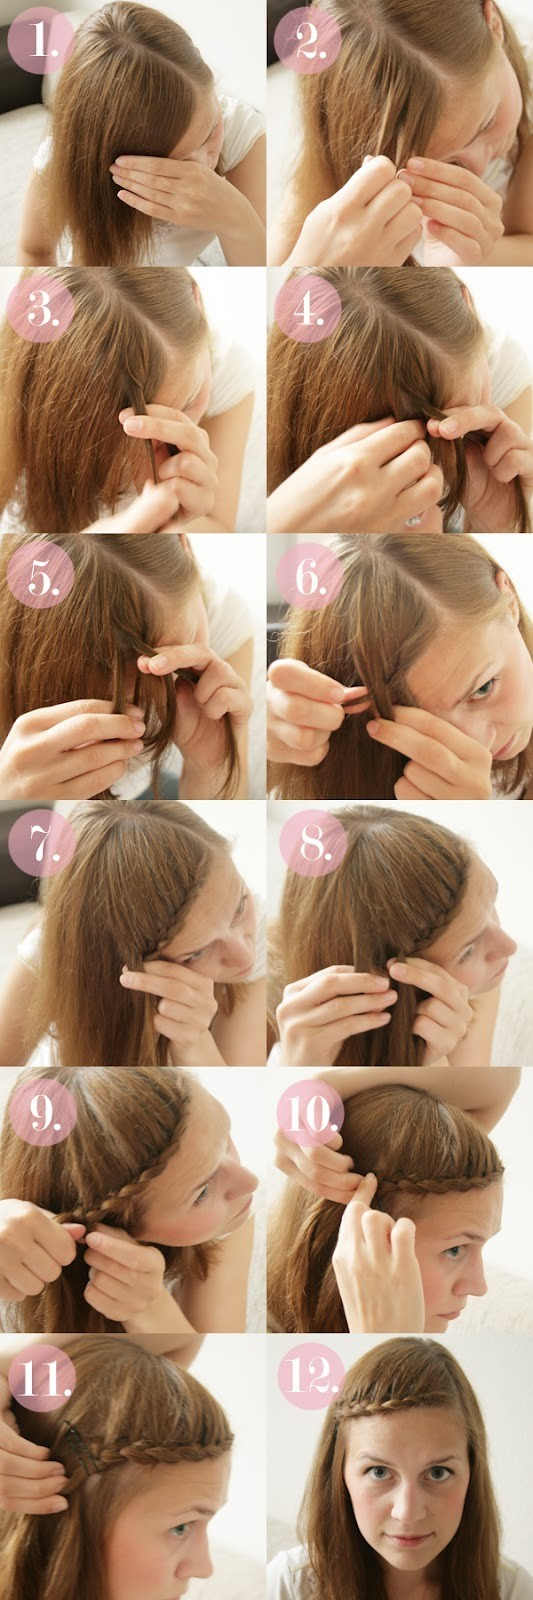 15 Braided Bangs Tutorial: Sweet Braided Hairstyles